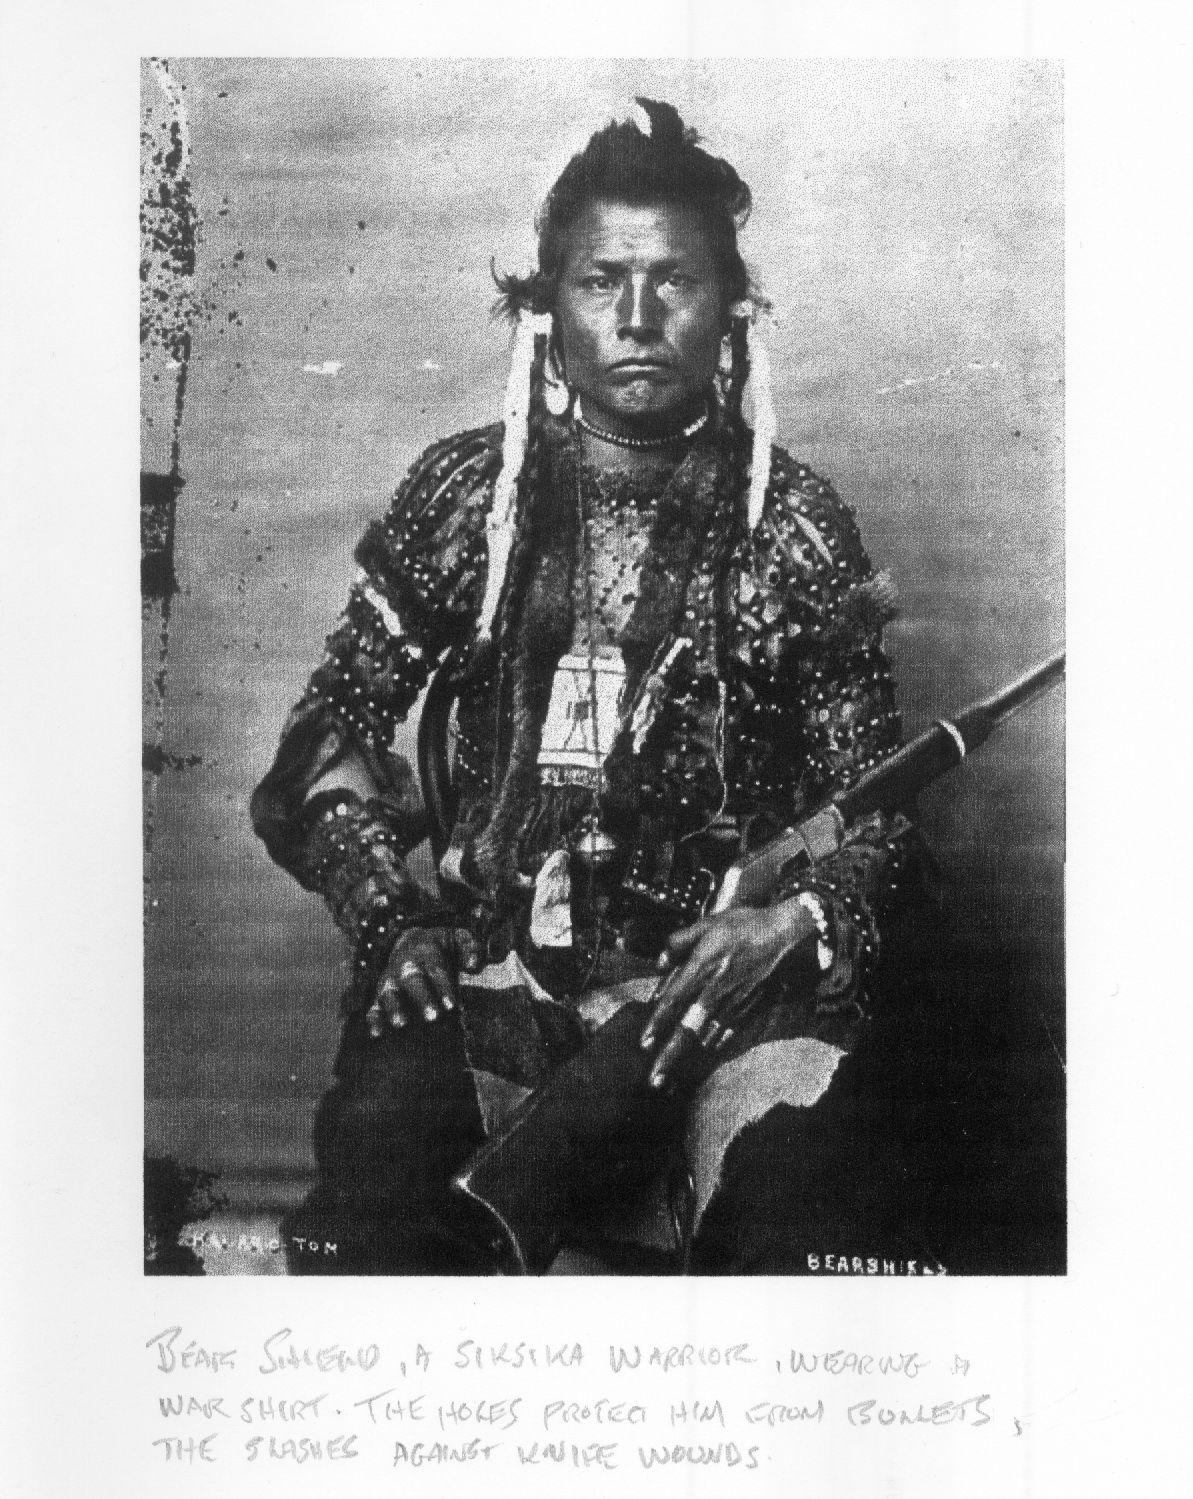 Bearshield, Siksika [Blackfoot Canada] warrior, with his war shirt, the hold protected him from bullets and the slashing protected him from knife wounds.